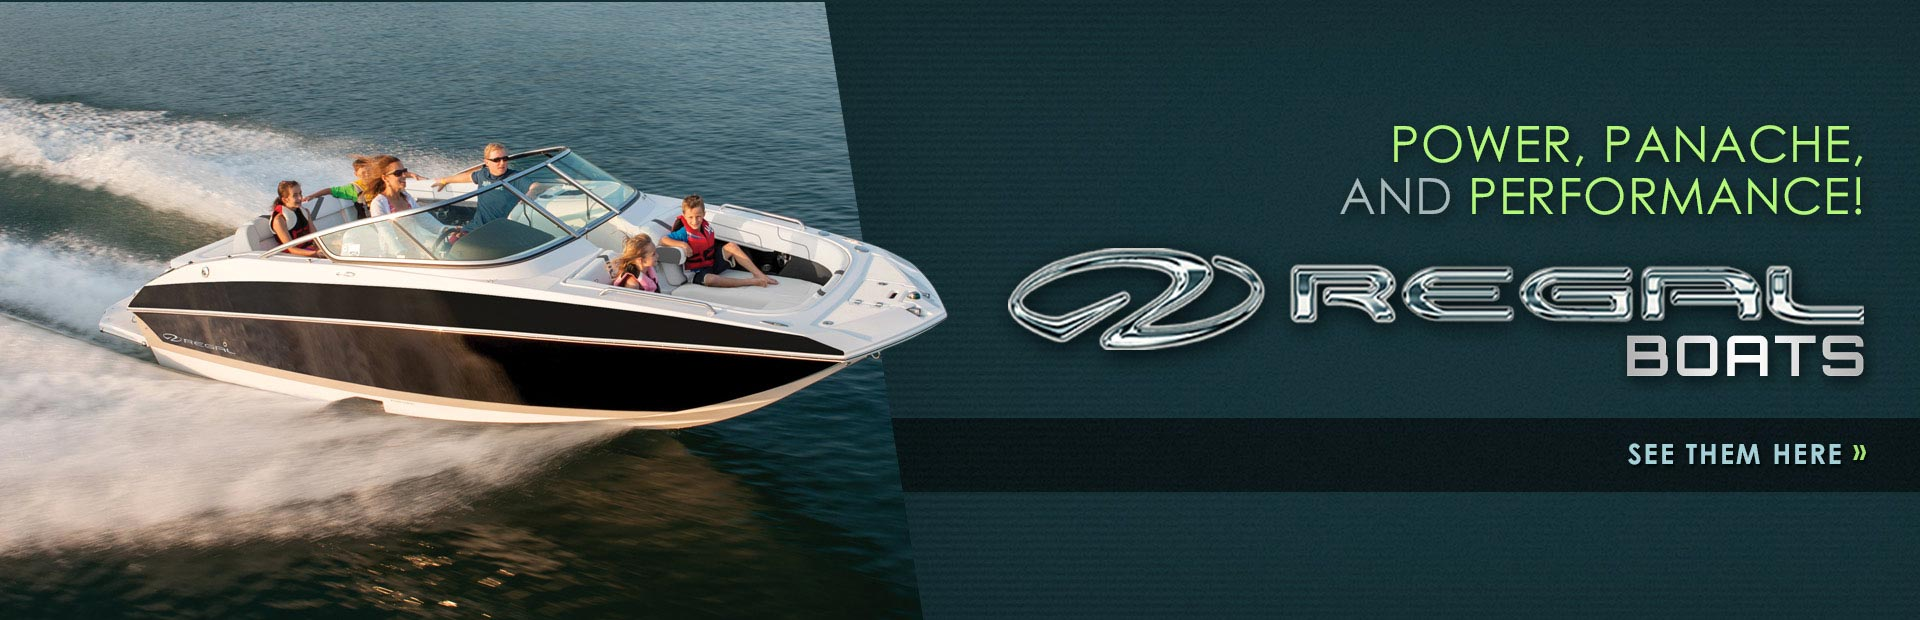 Home - Vermont and Lake Champlain's Premier Powerboat Dealer